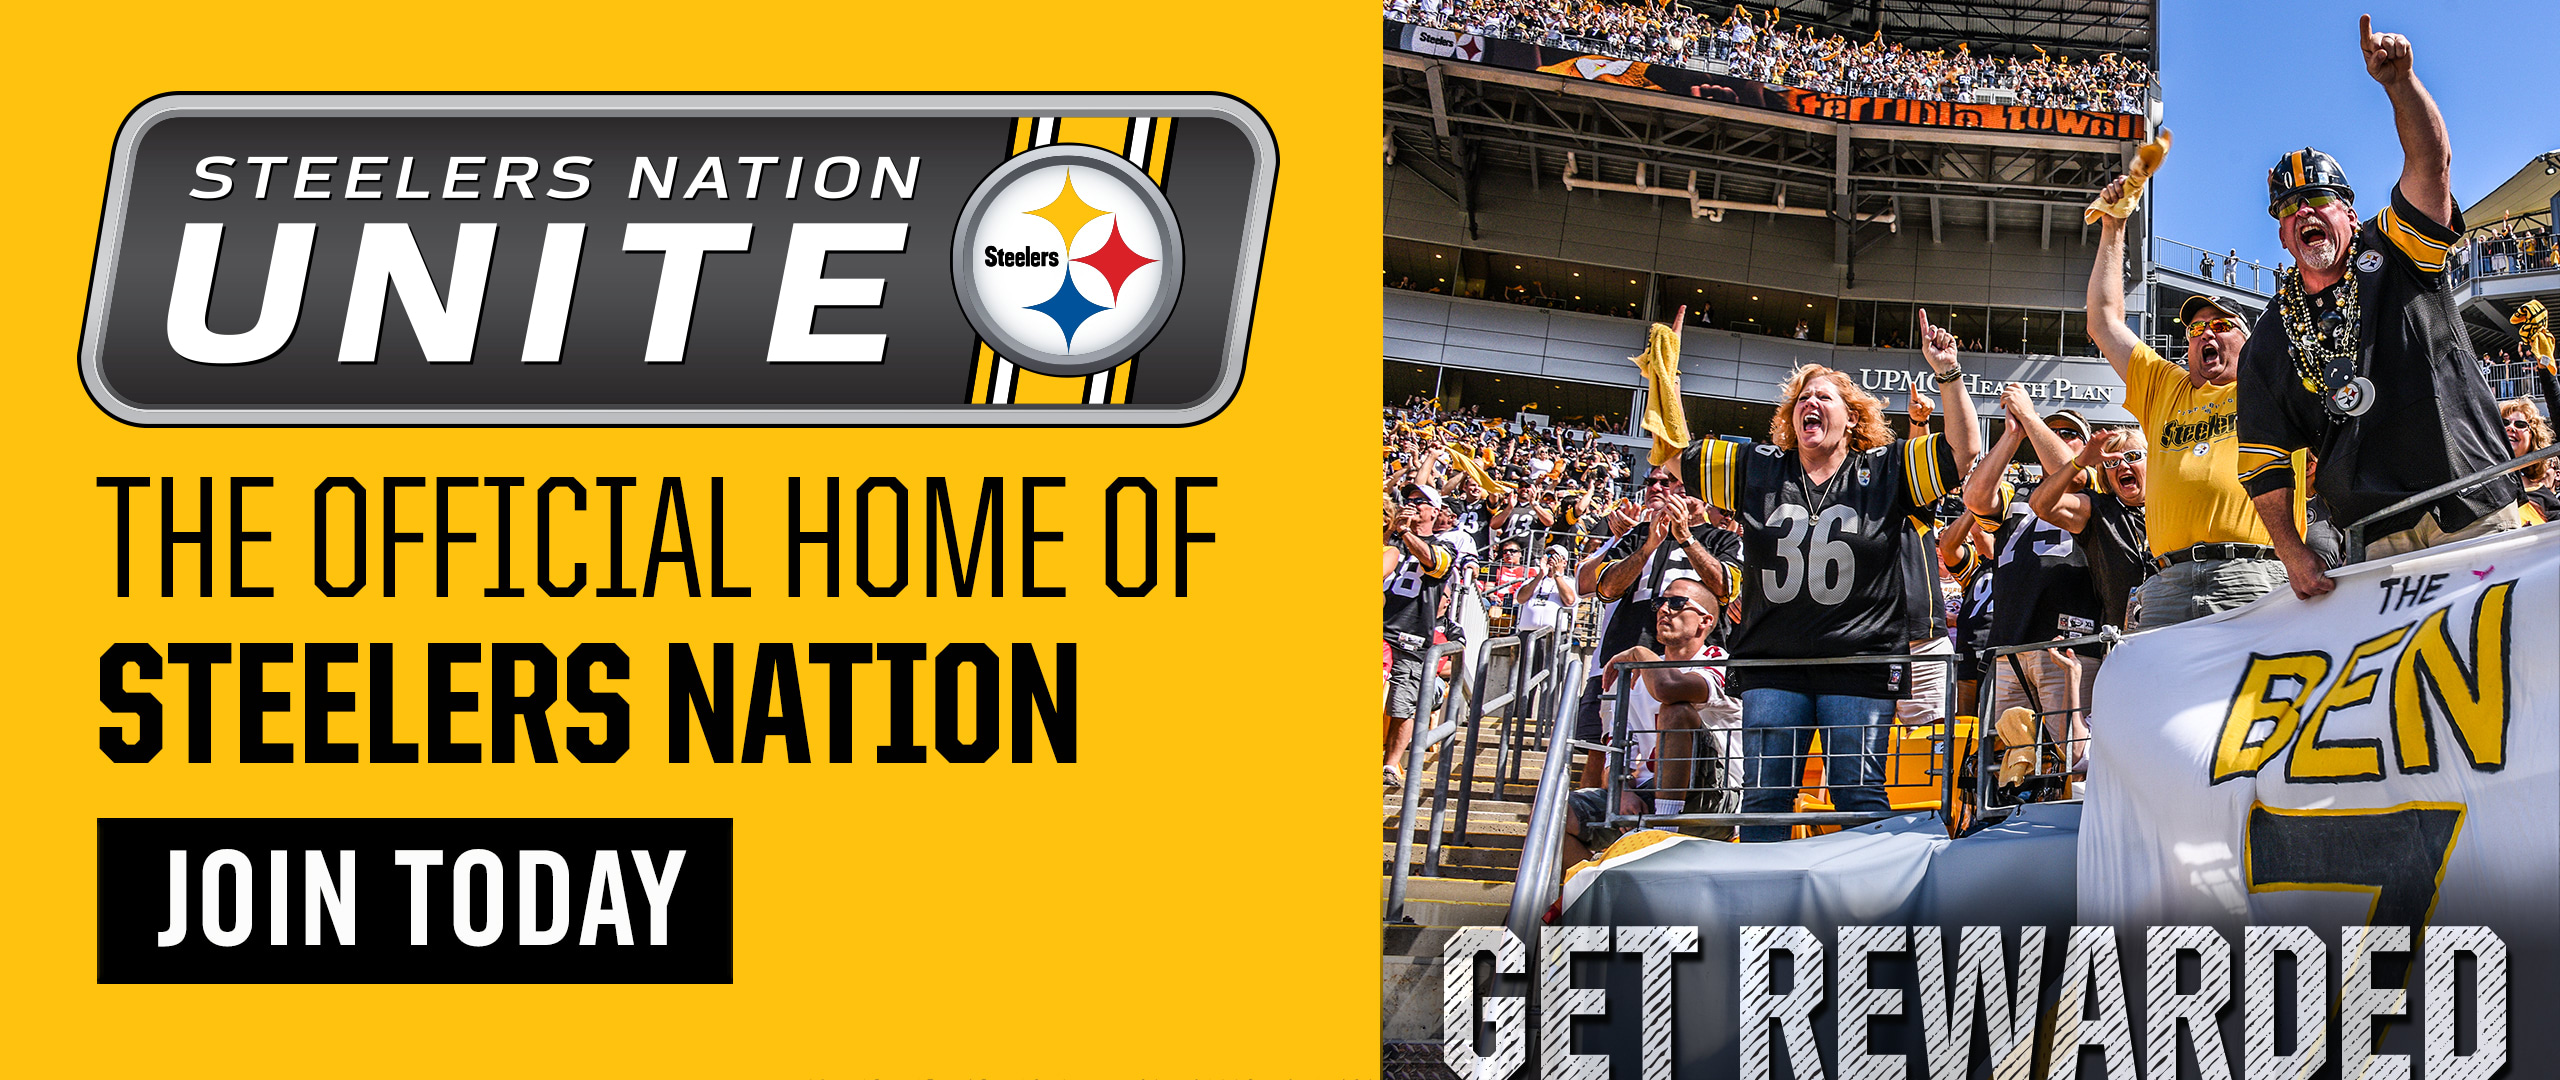 d4340445 Steelers Nation Unite Coming to the Game | Pittsburgh Steelers ...